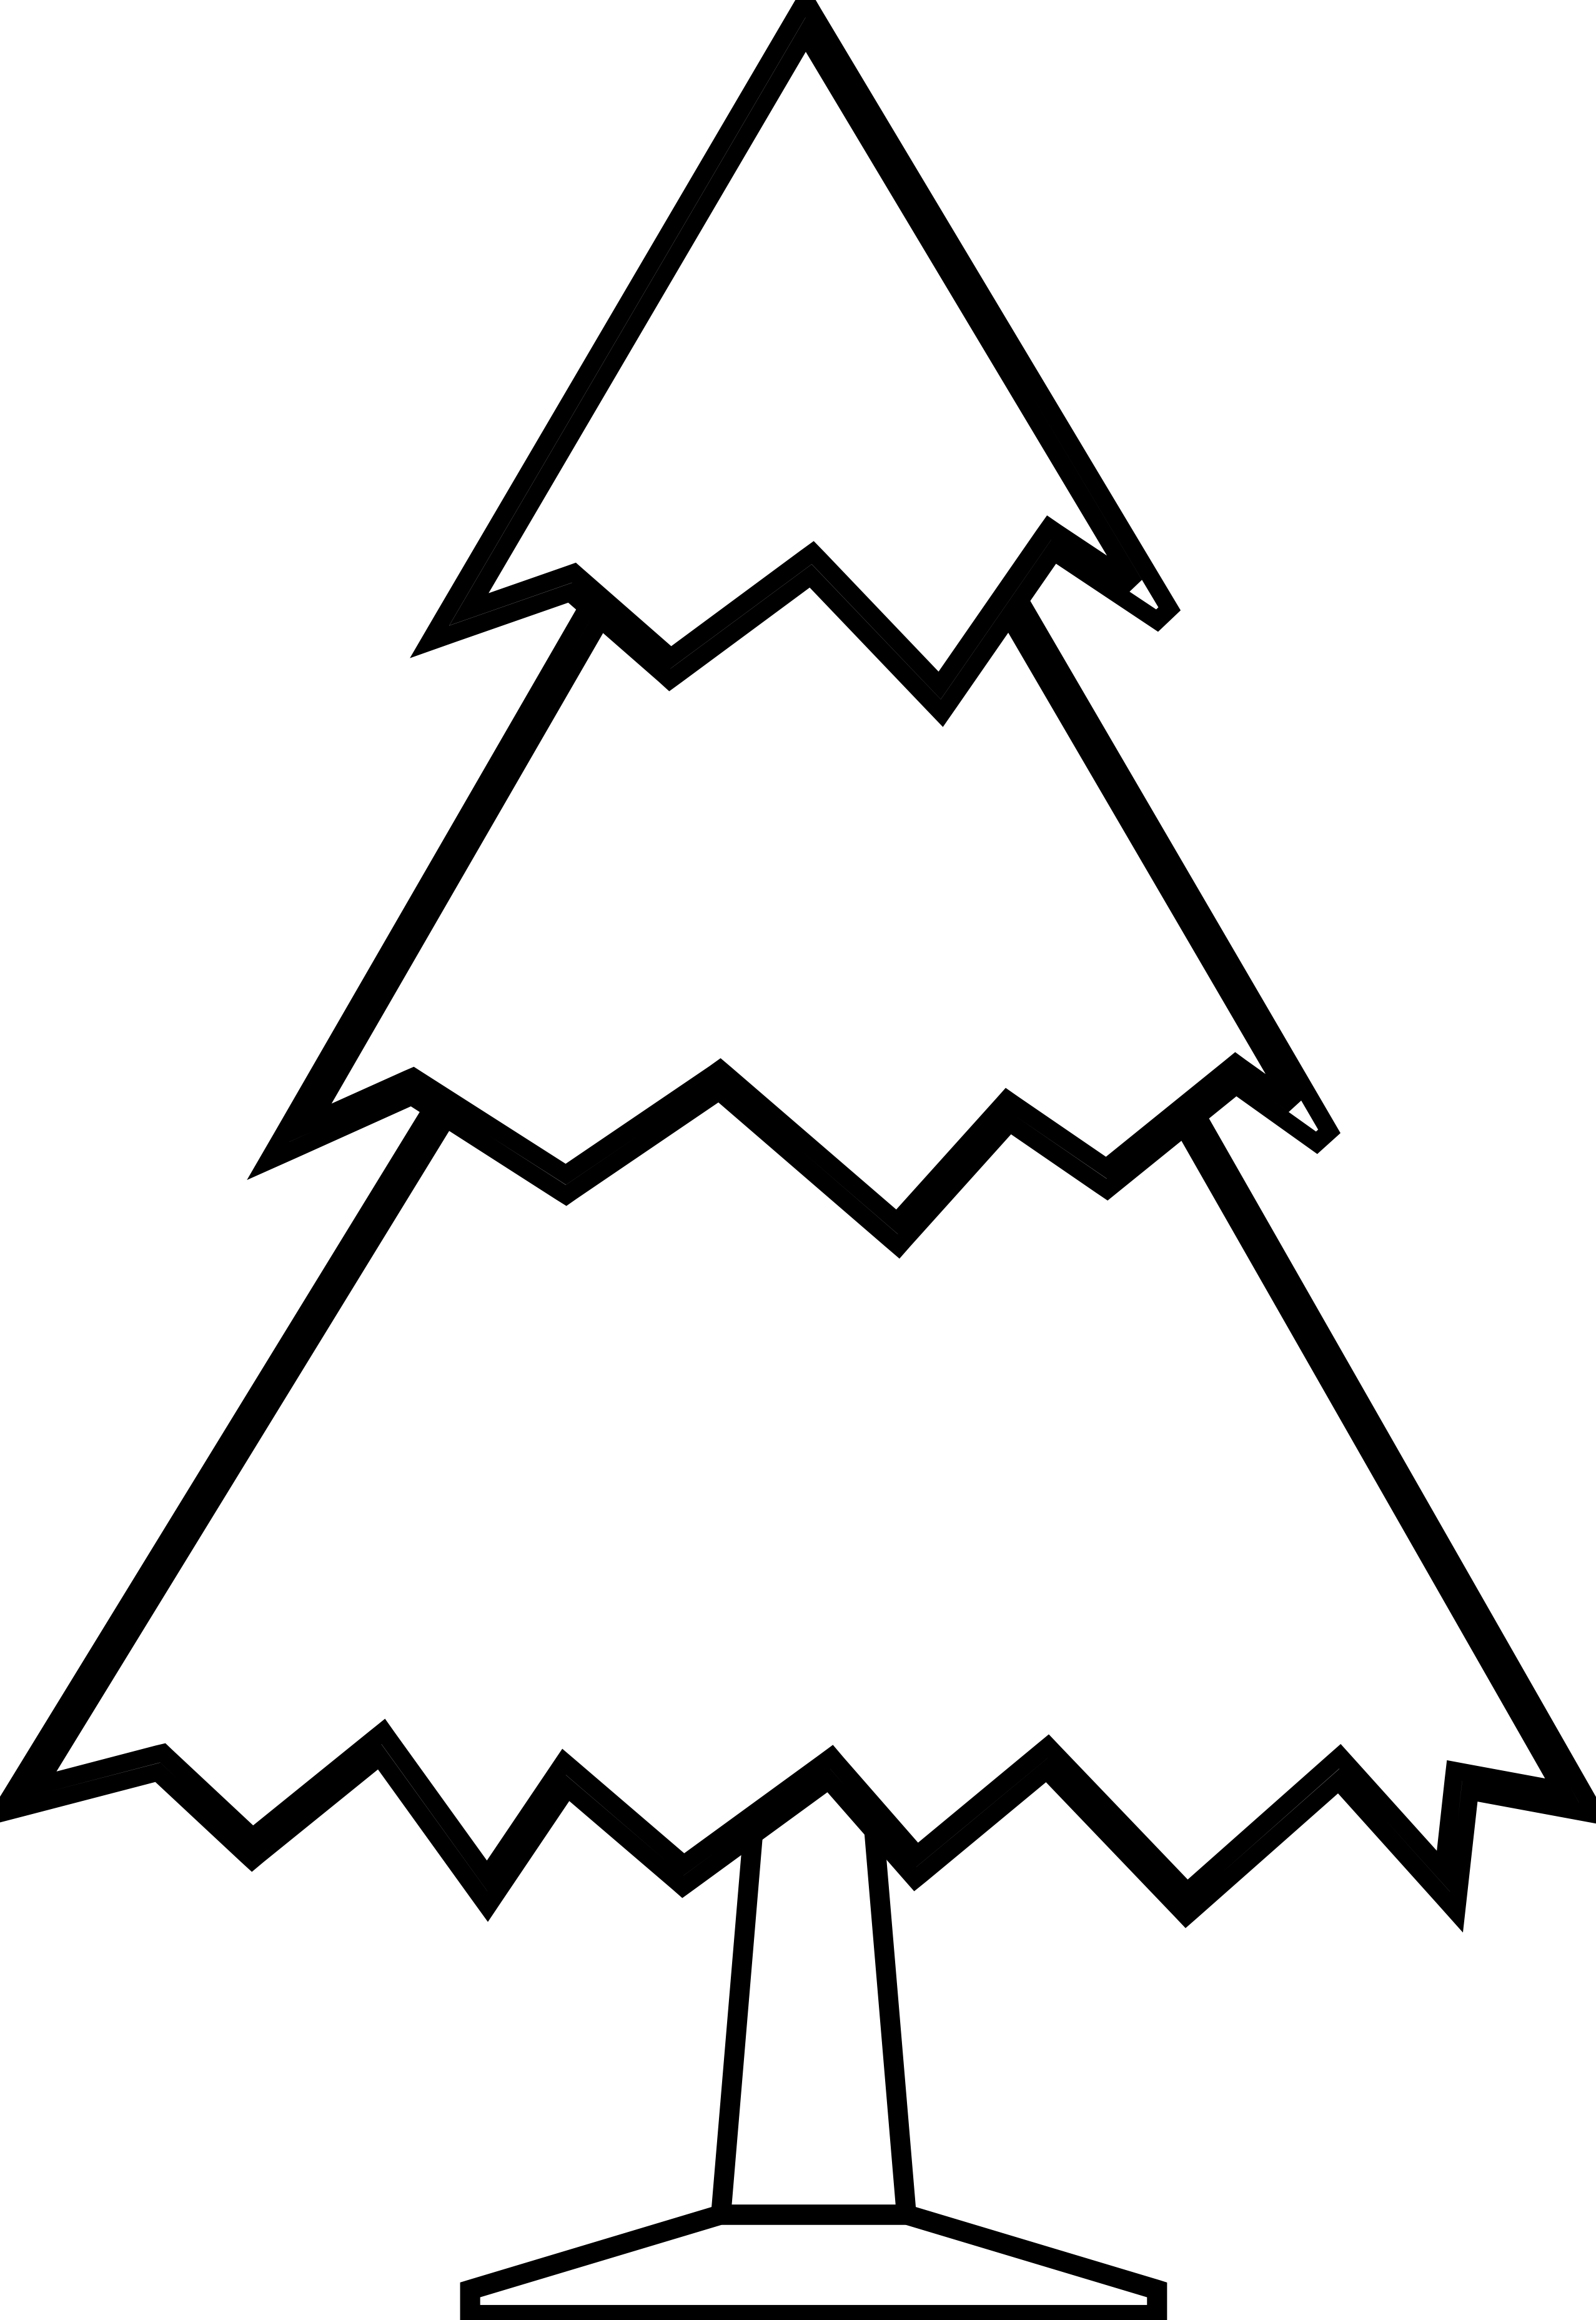 Simple Black And White Tree Drawing | Clipart Panda - Free Clipart ... svg royalty free